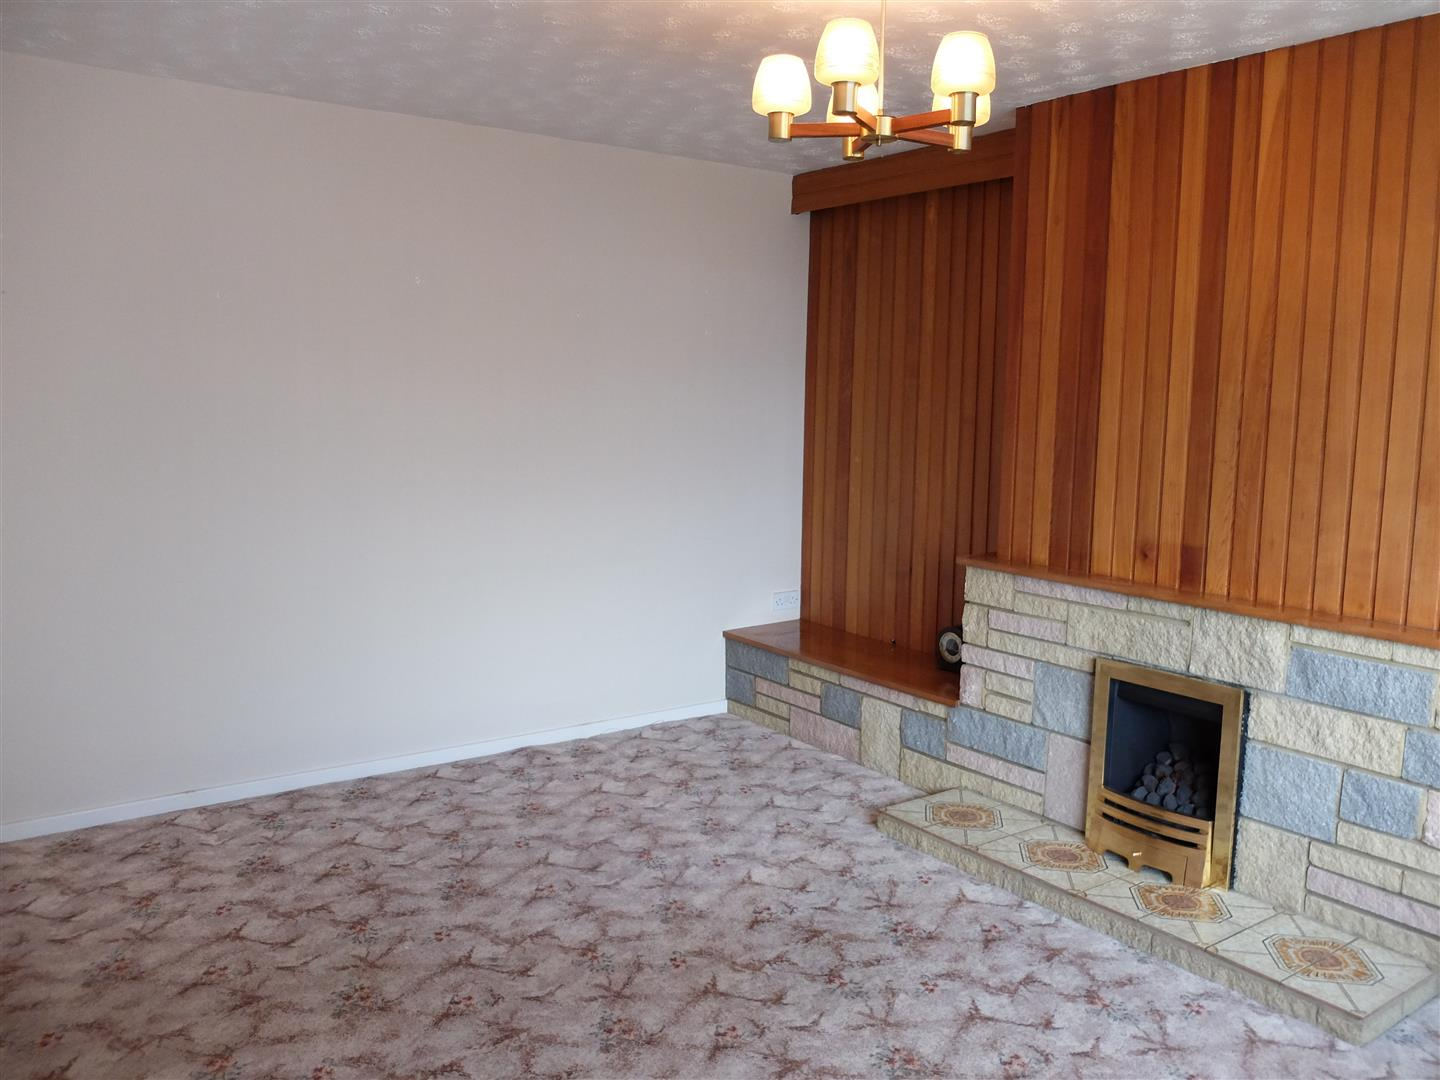 2 Bedrooms Bungalow - Semi Detached On Sale 2 Farbrow Road Carlisle